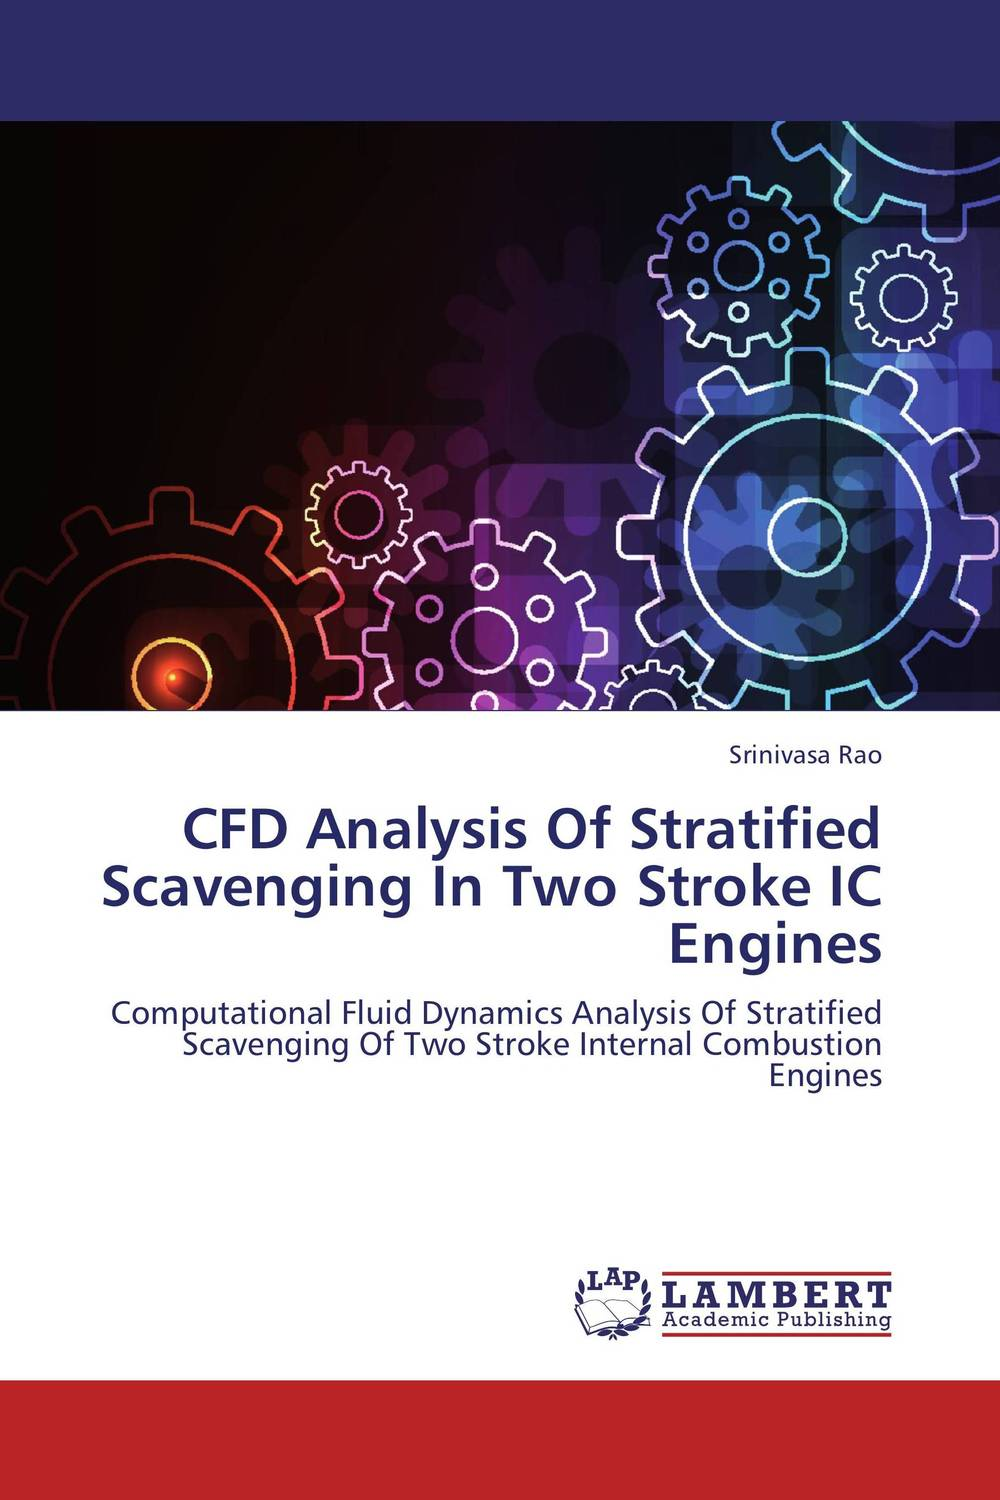 CFD Analysis Of Stratified Scavenging In Two Stroke IC Engines ocma mec 1 recommendations for the protection of diesel engines operat in hazard areas